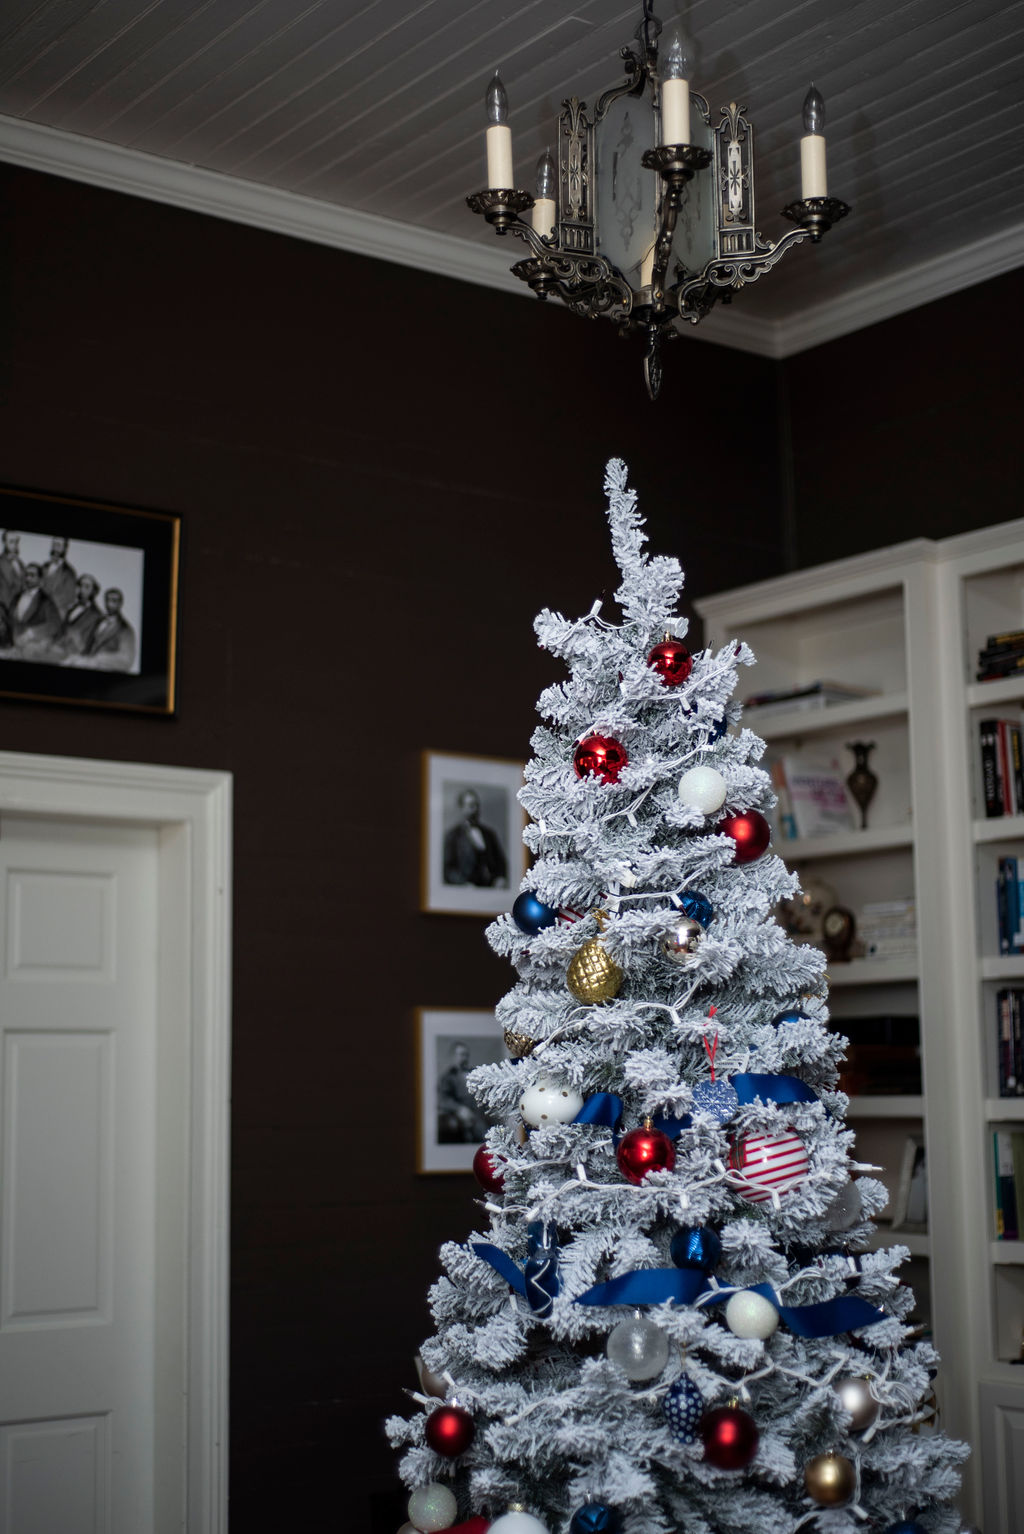 DSC_2906 Patriotic Holiday Decor: Reconstruction Era Holiday Theme